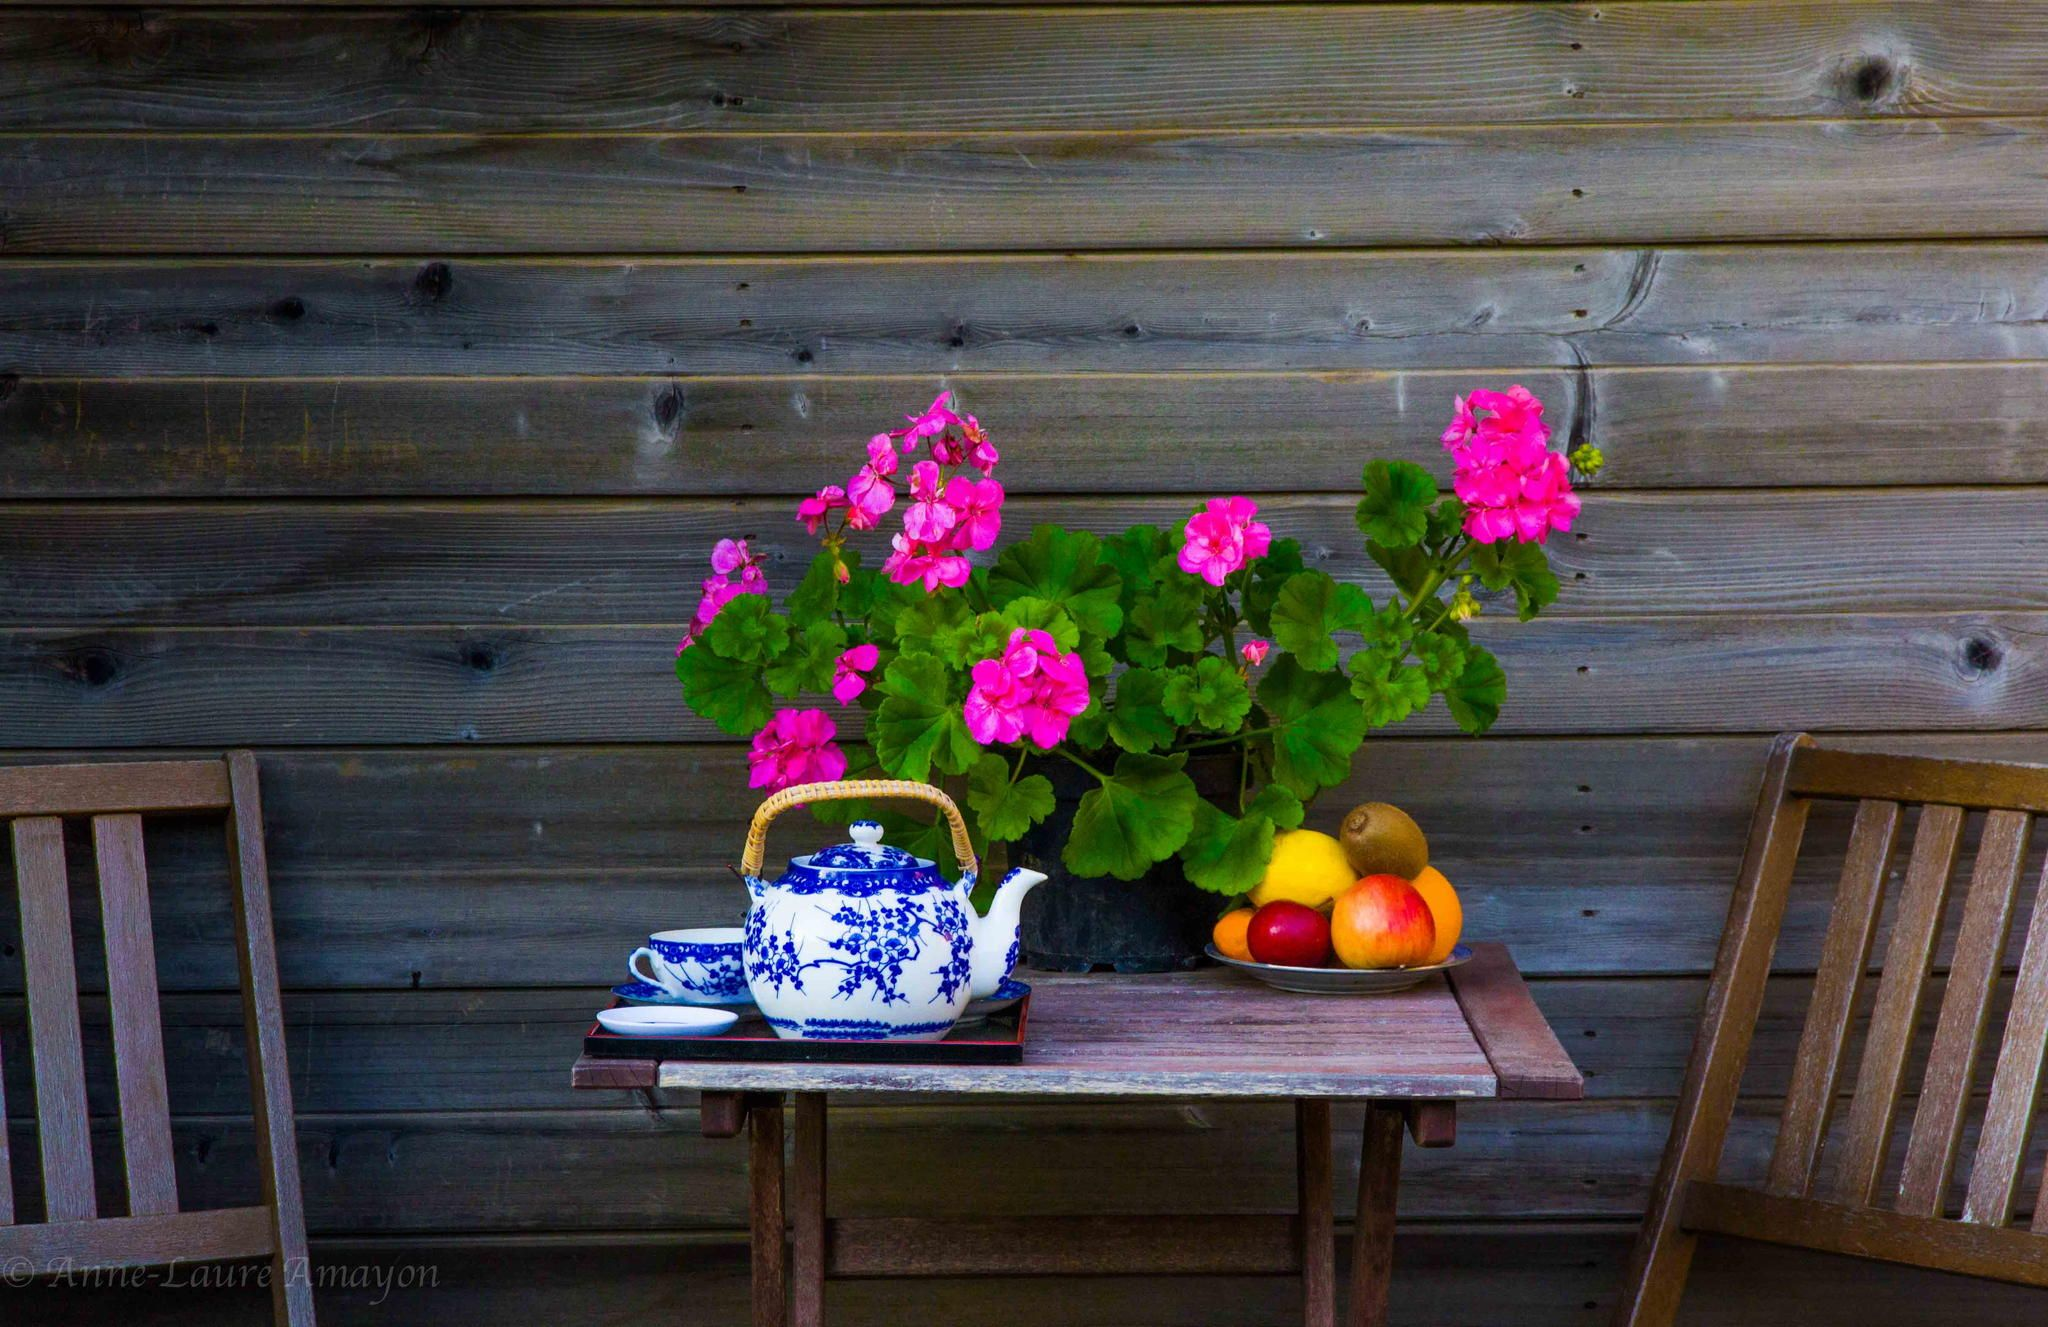 Balcony table by Anne-Laure Amayon on 500px